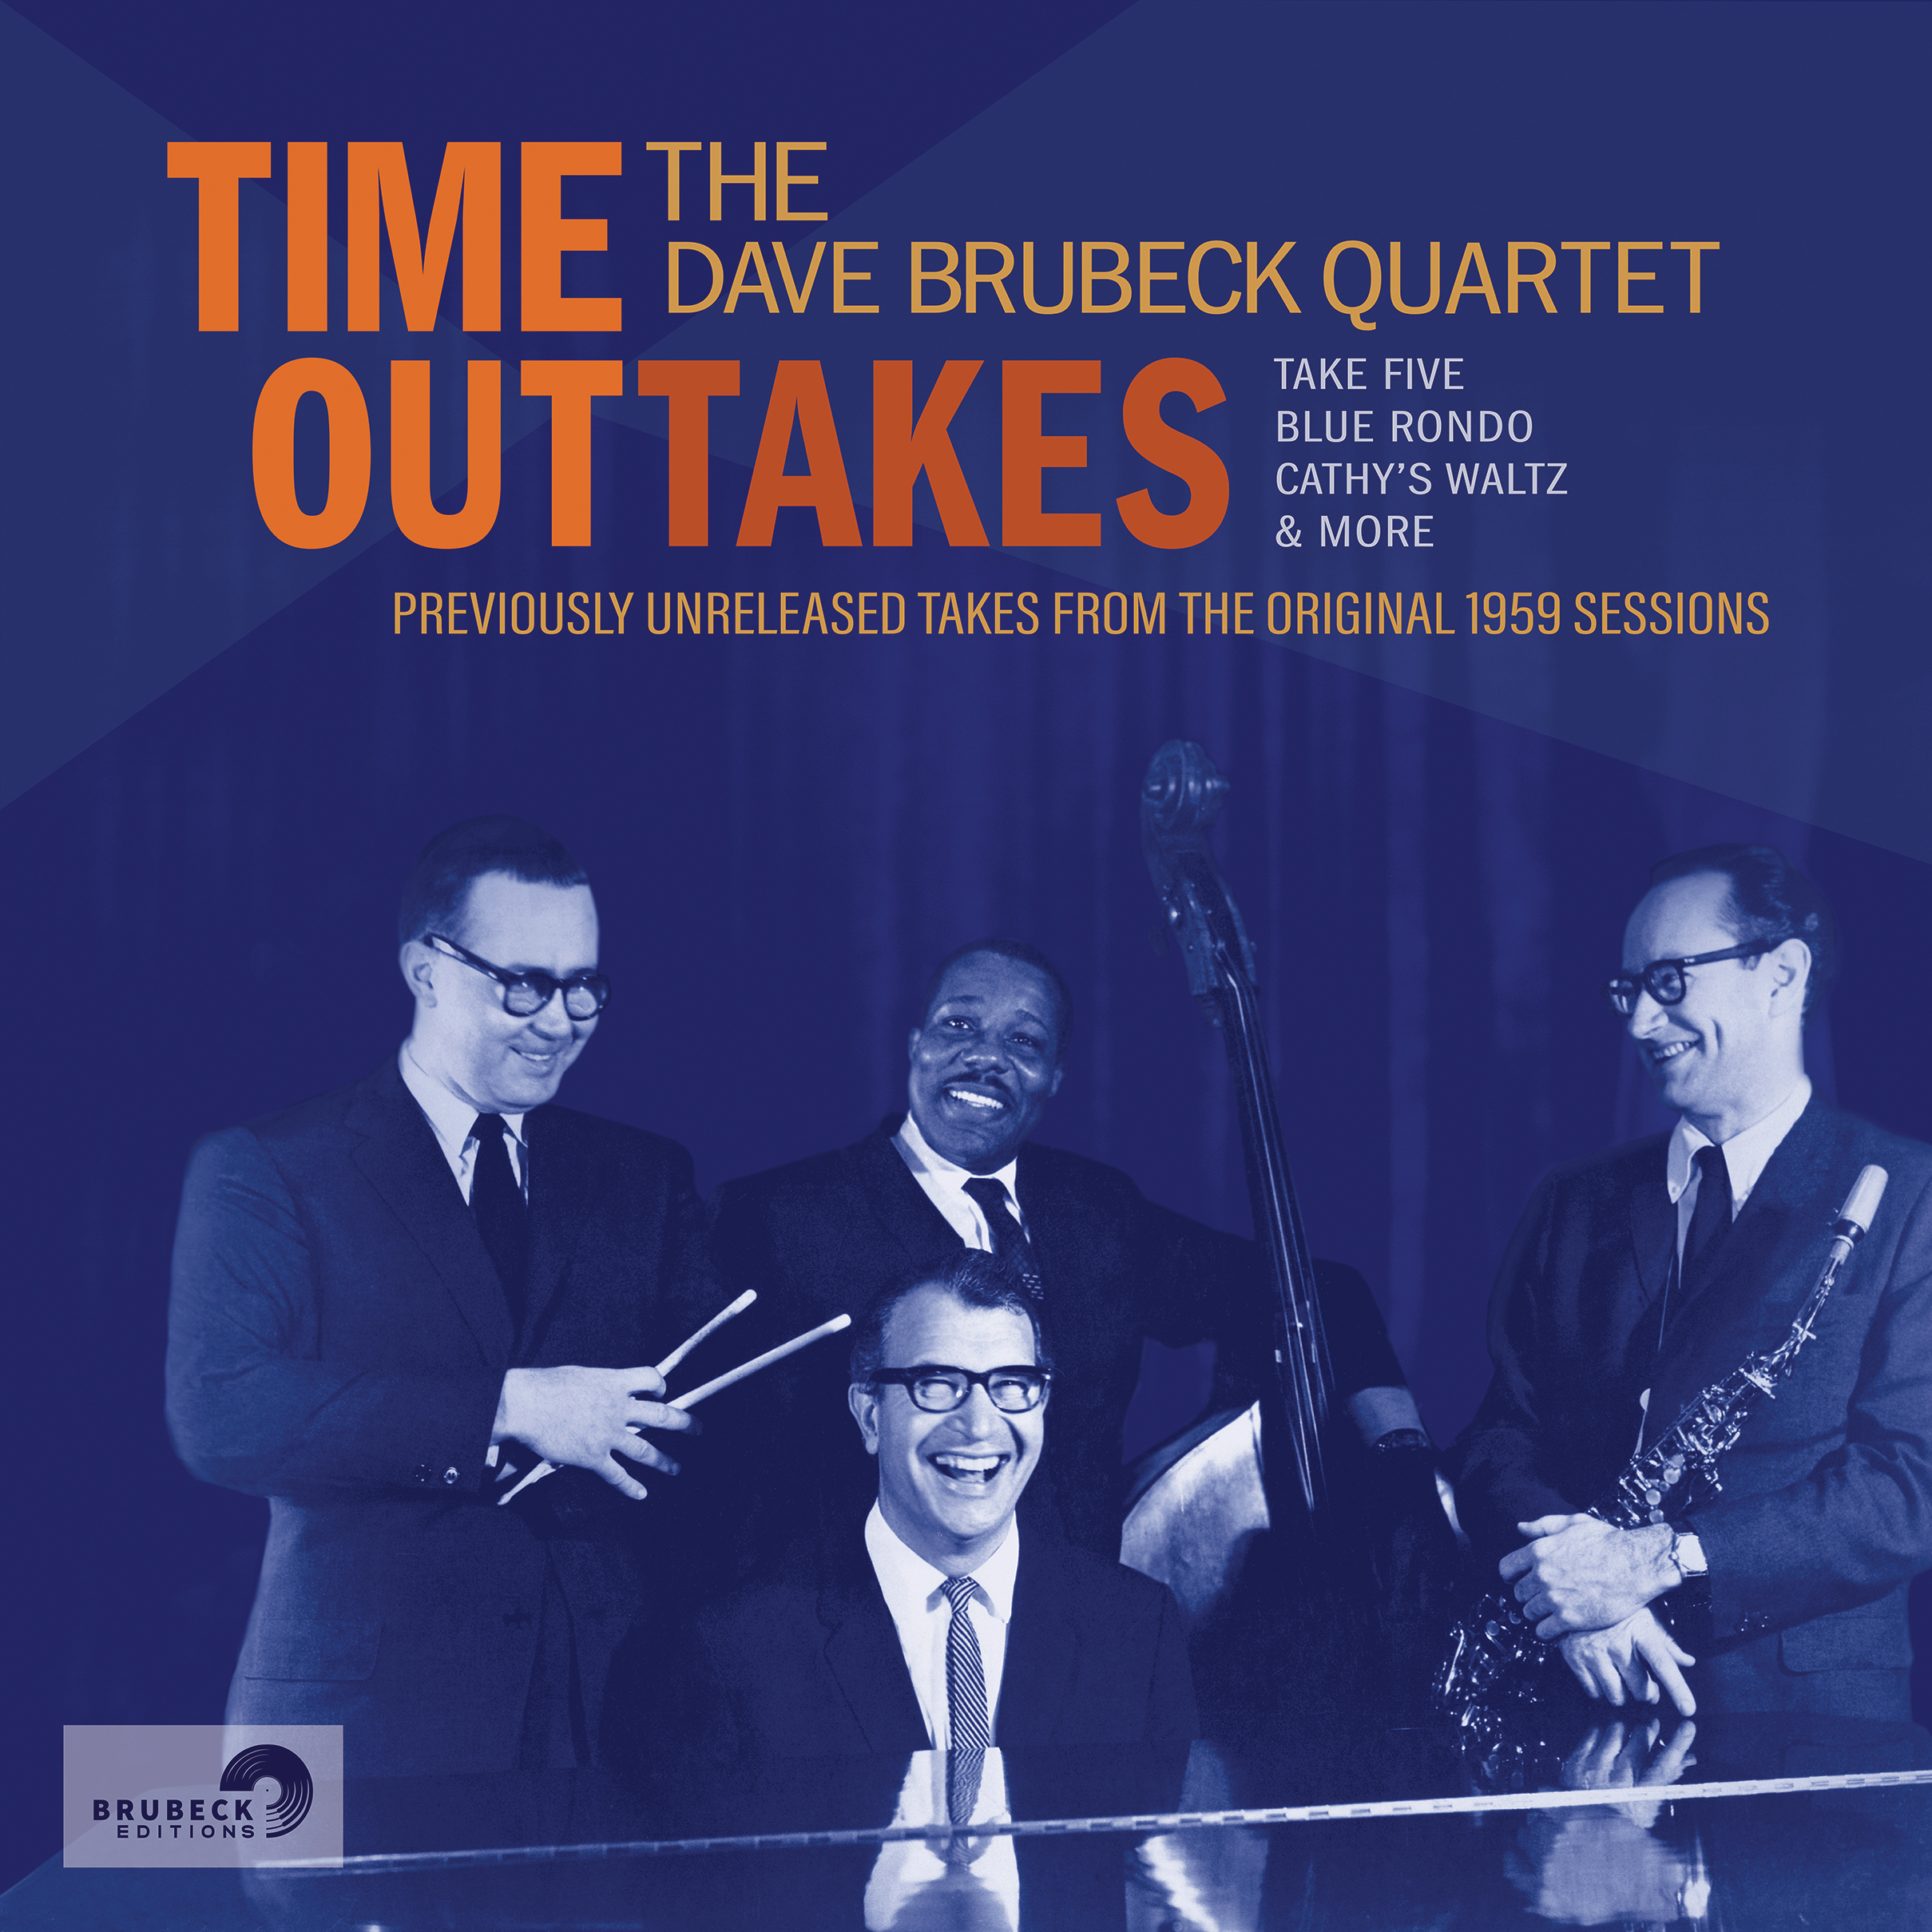 FEATURE: What Do We Overlook About Dave Brubeck on His 100th Birthday? – Discogs